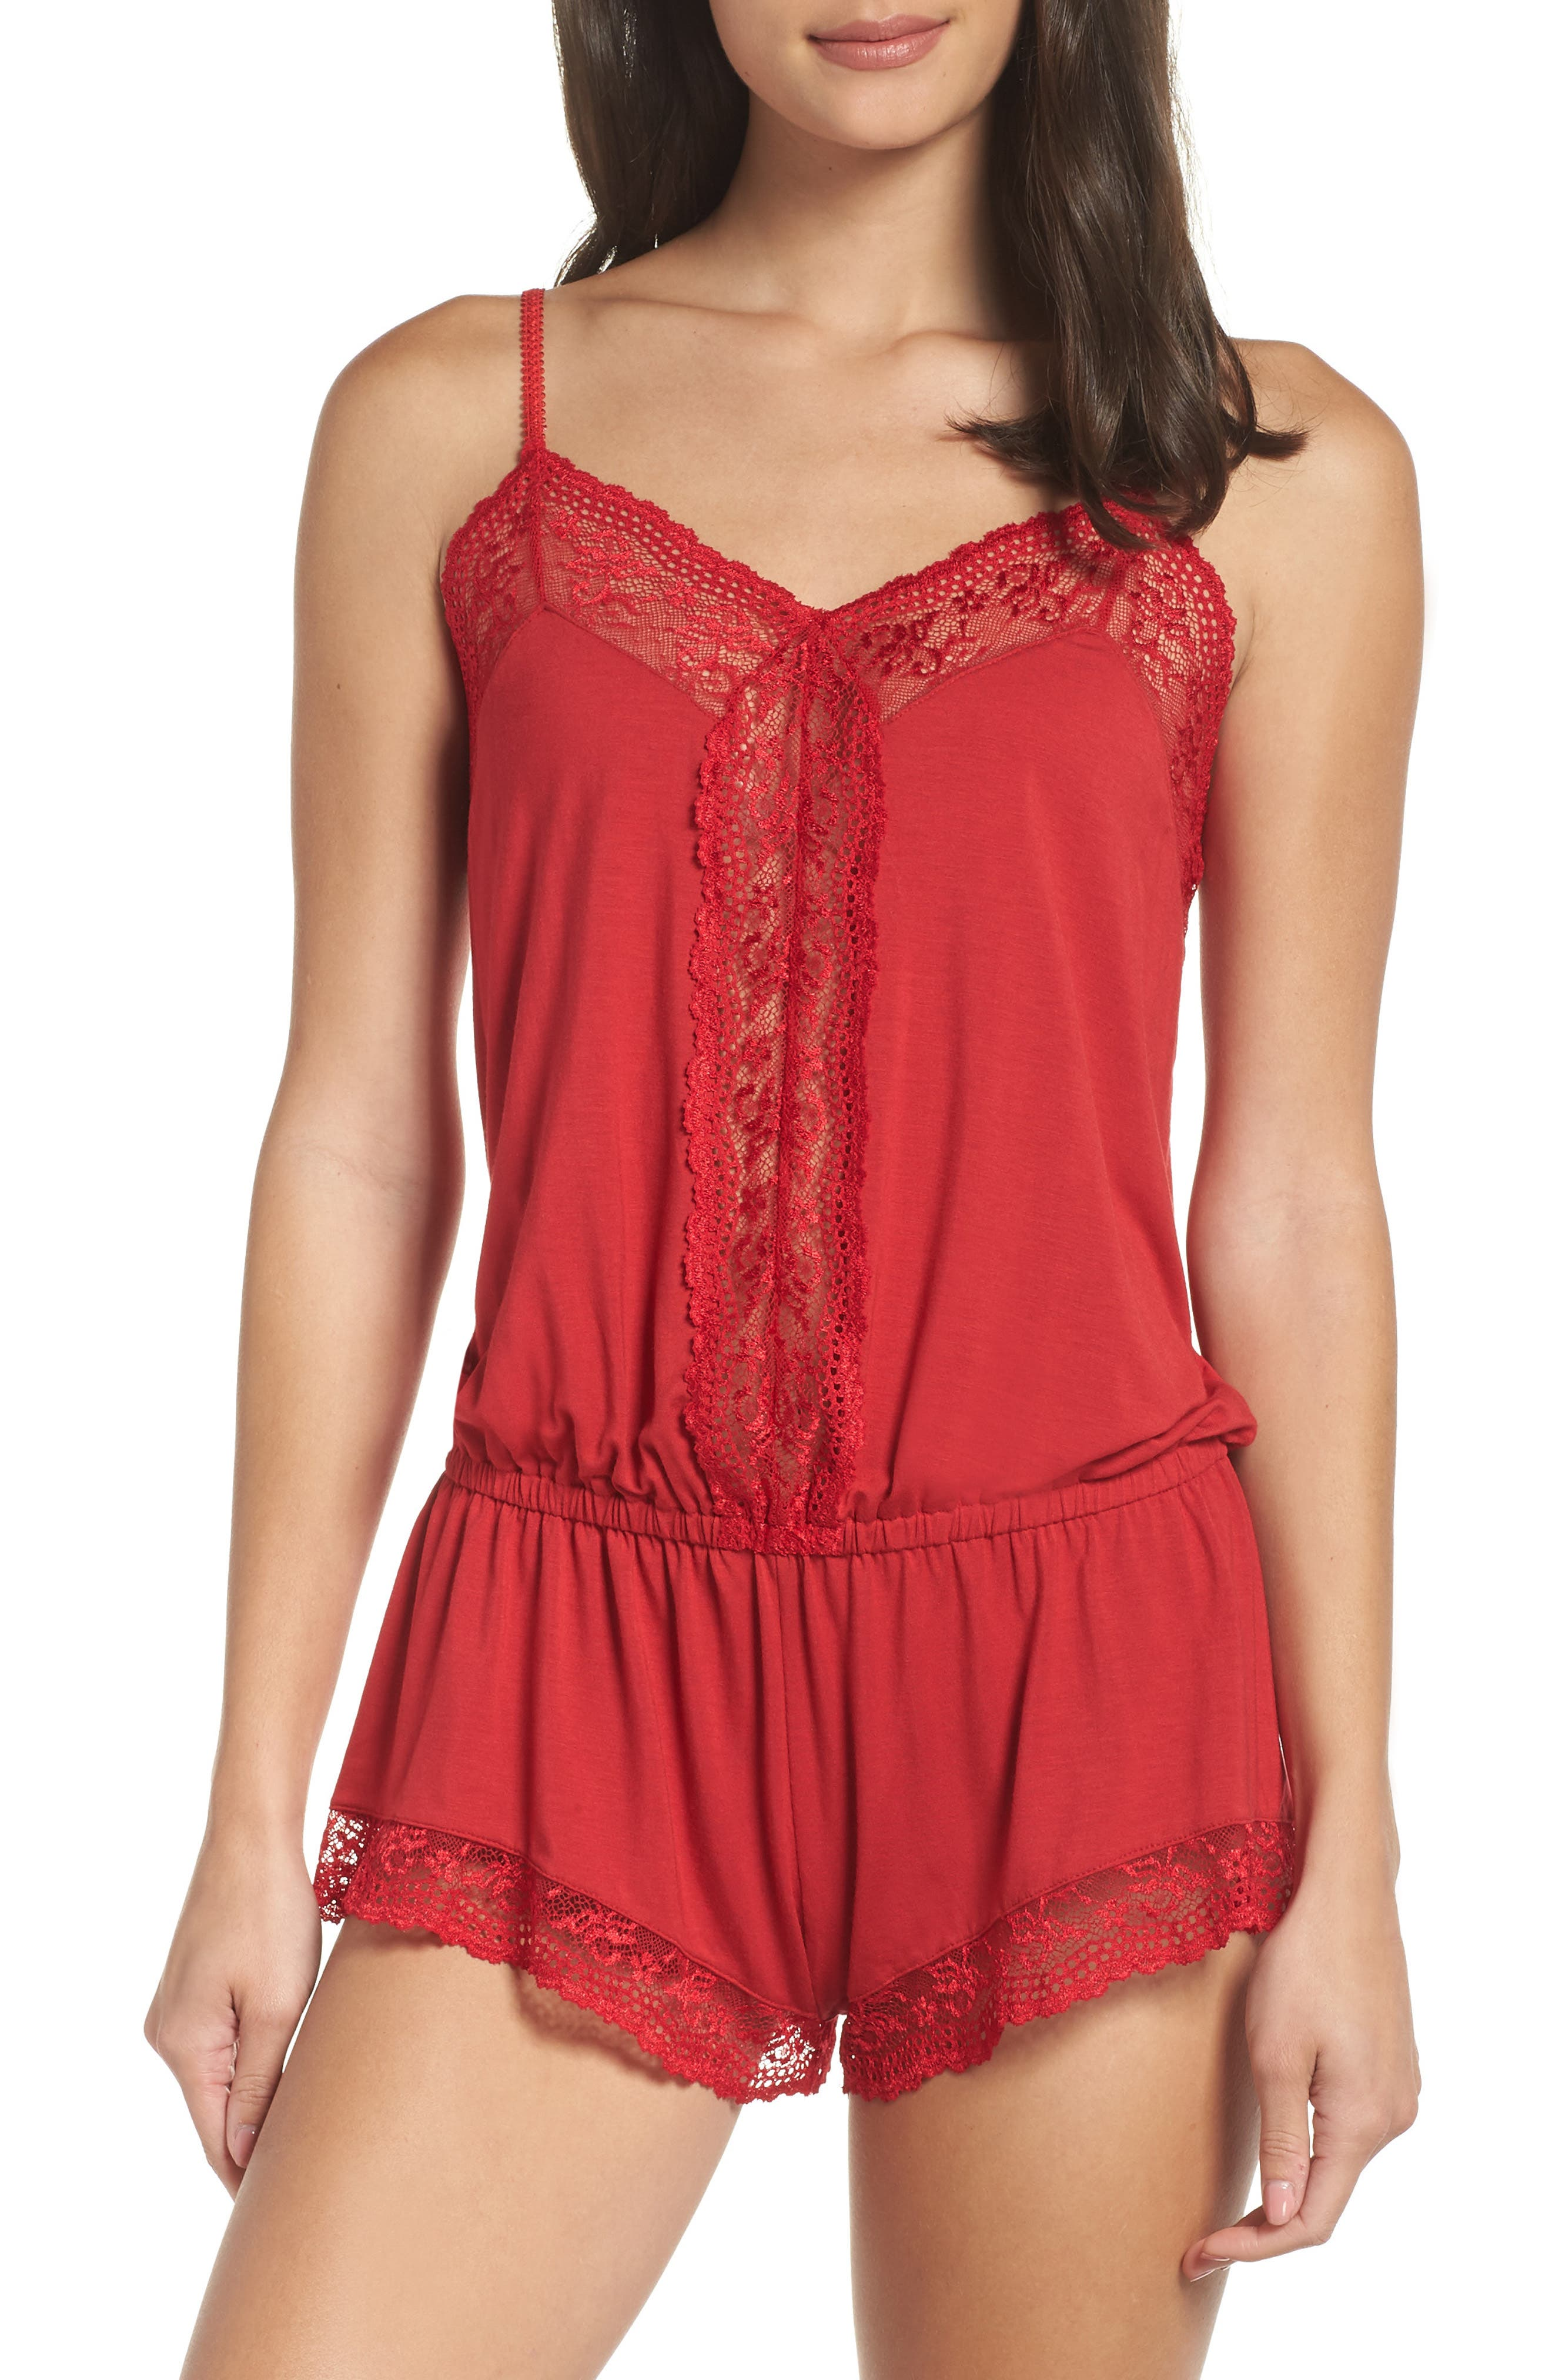 Colette the Dreamer Romper,                             Main thumbnail 1, color,                             SCARLET